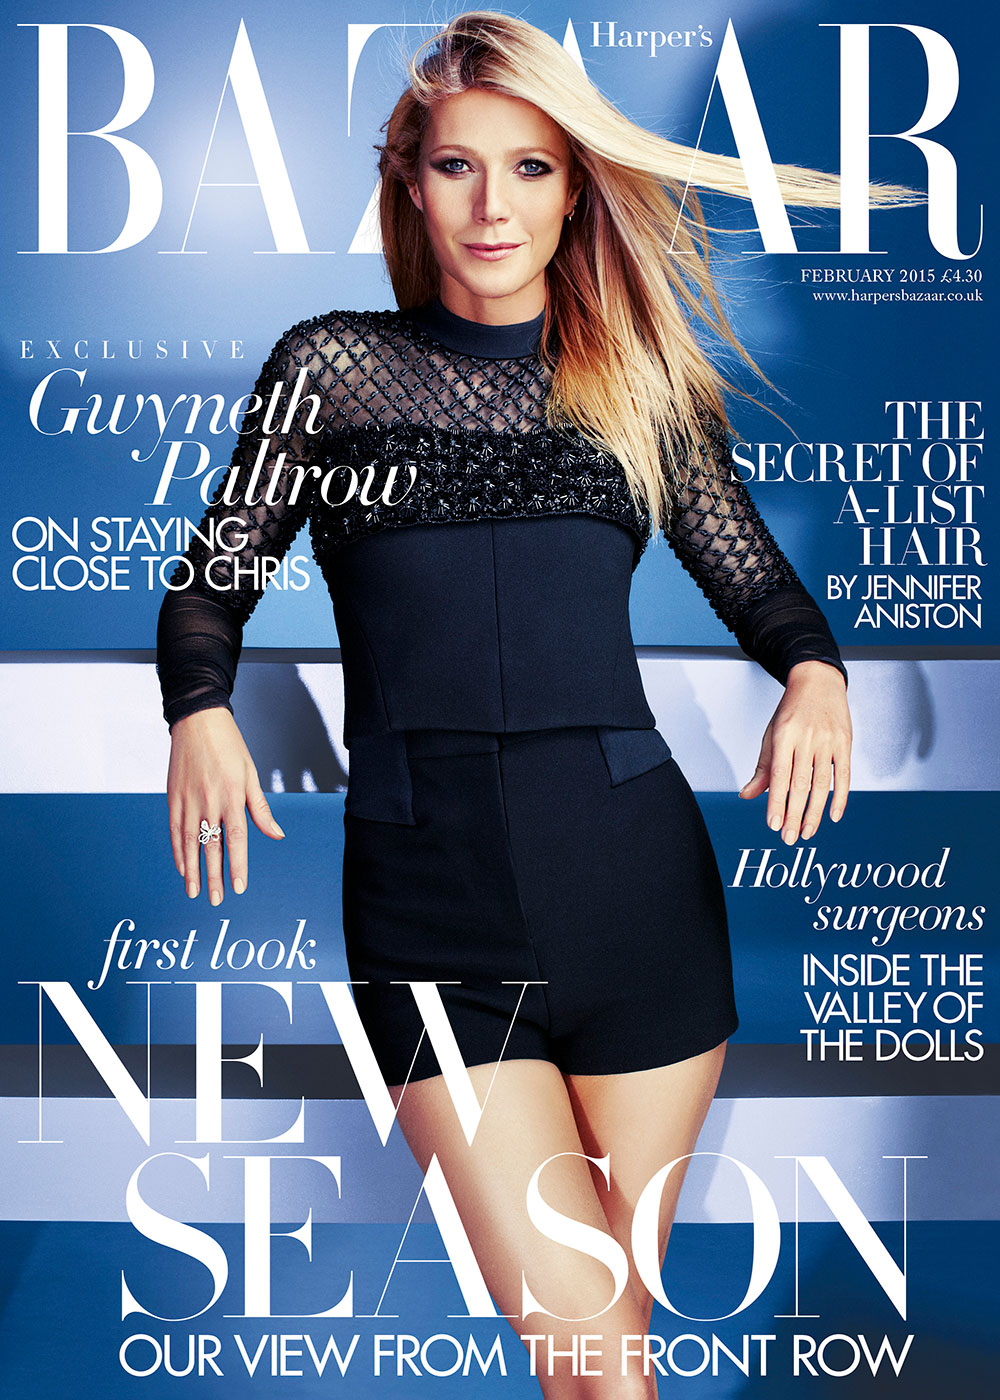 gwyneth-paltrow-harper-s-bazaar-magazine-uk-february-2015